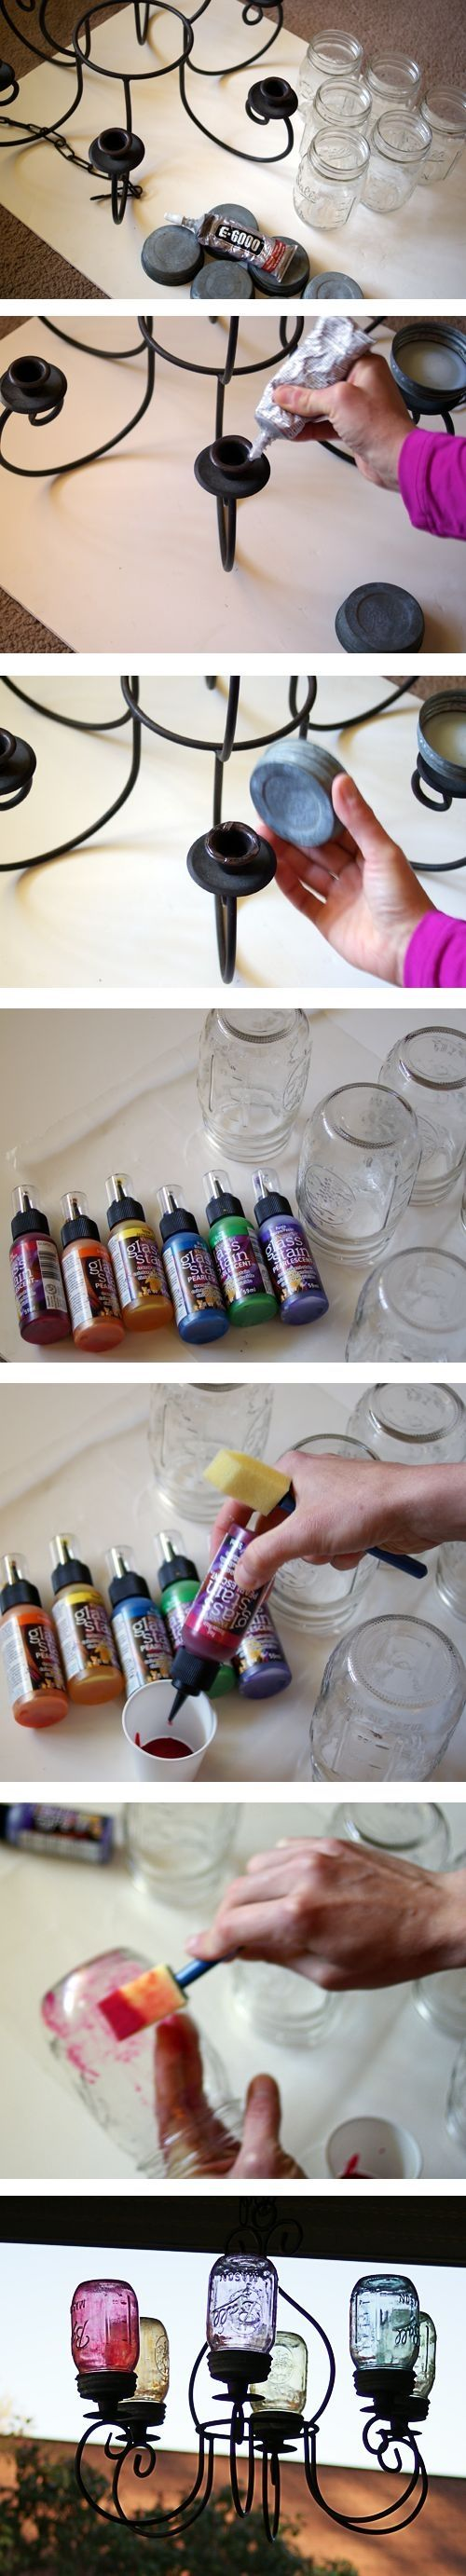 DIY Mason Jar Chandelier. Put batterie operated candles inside jar lids and use as outdoor/ garden decor!